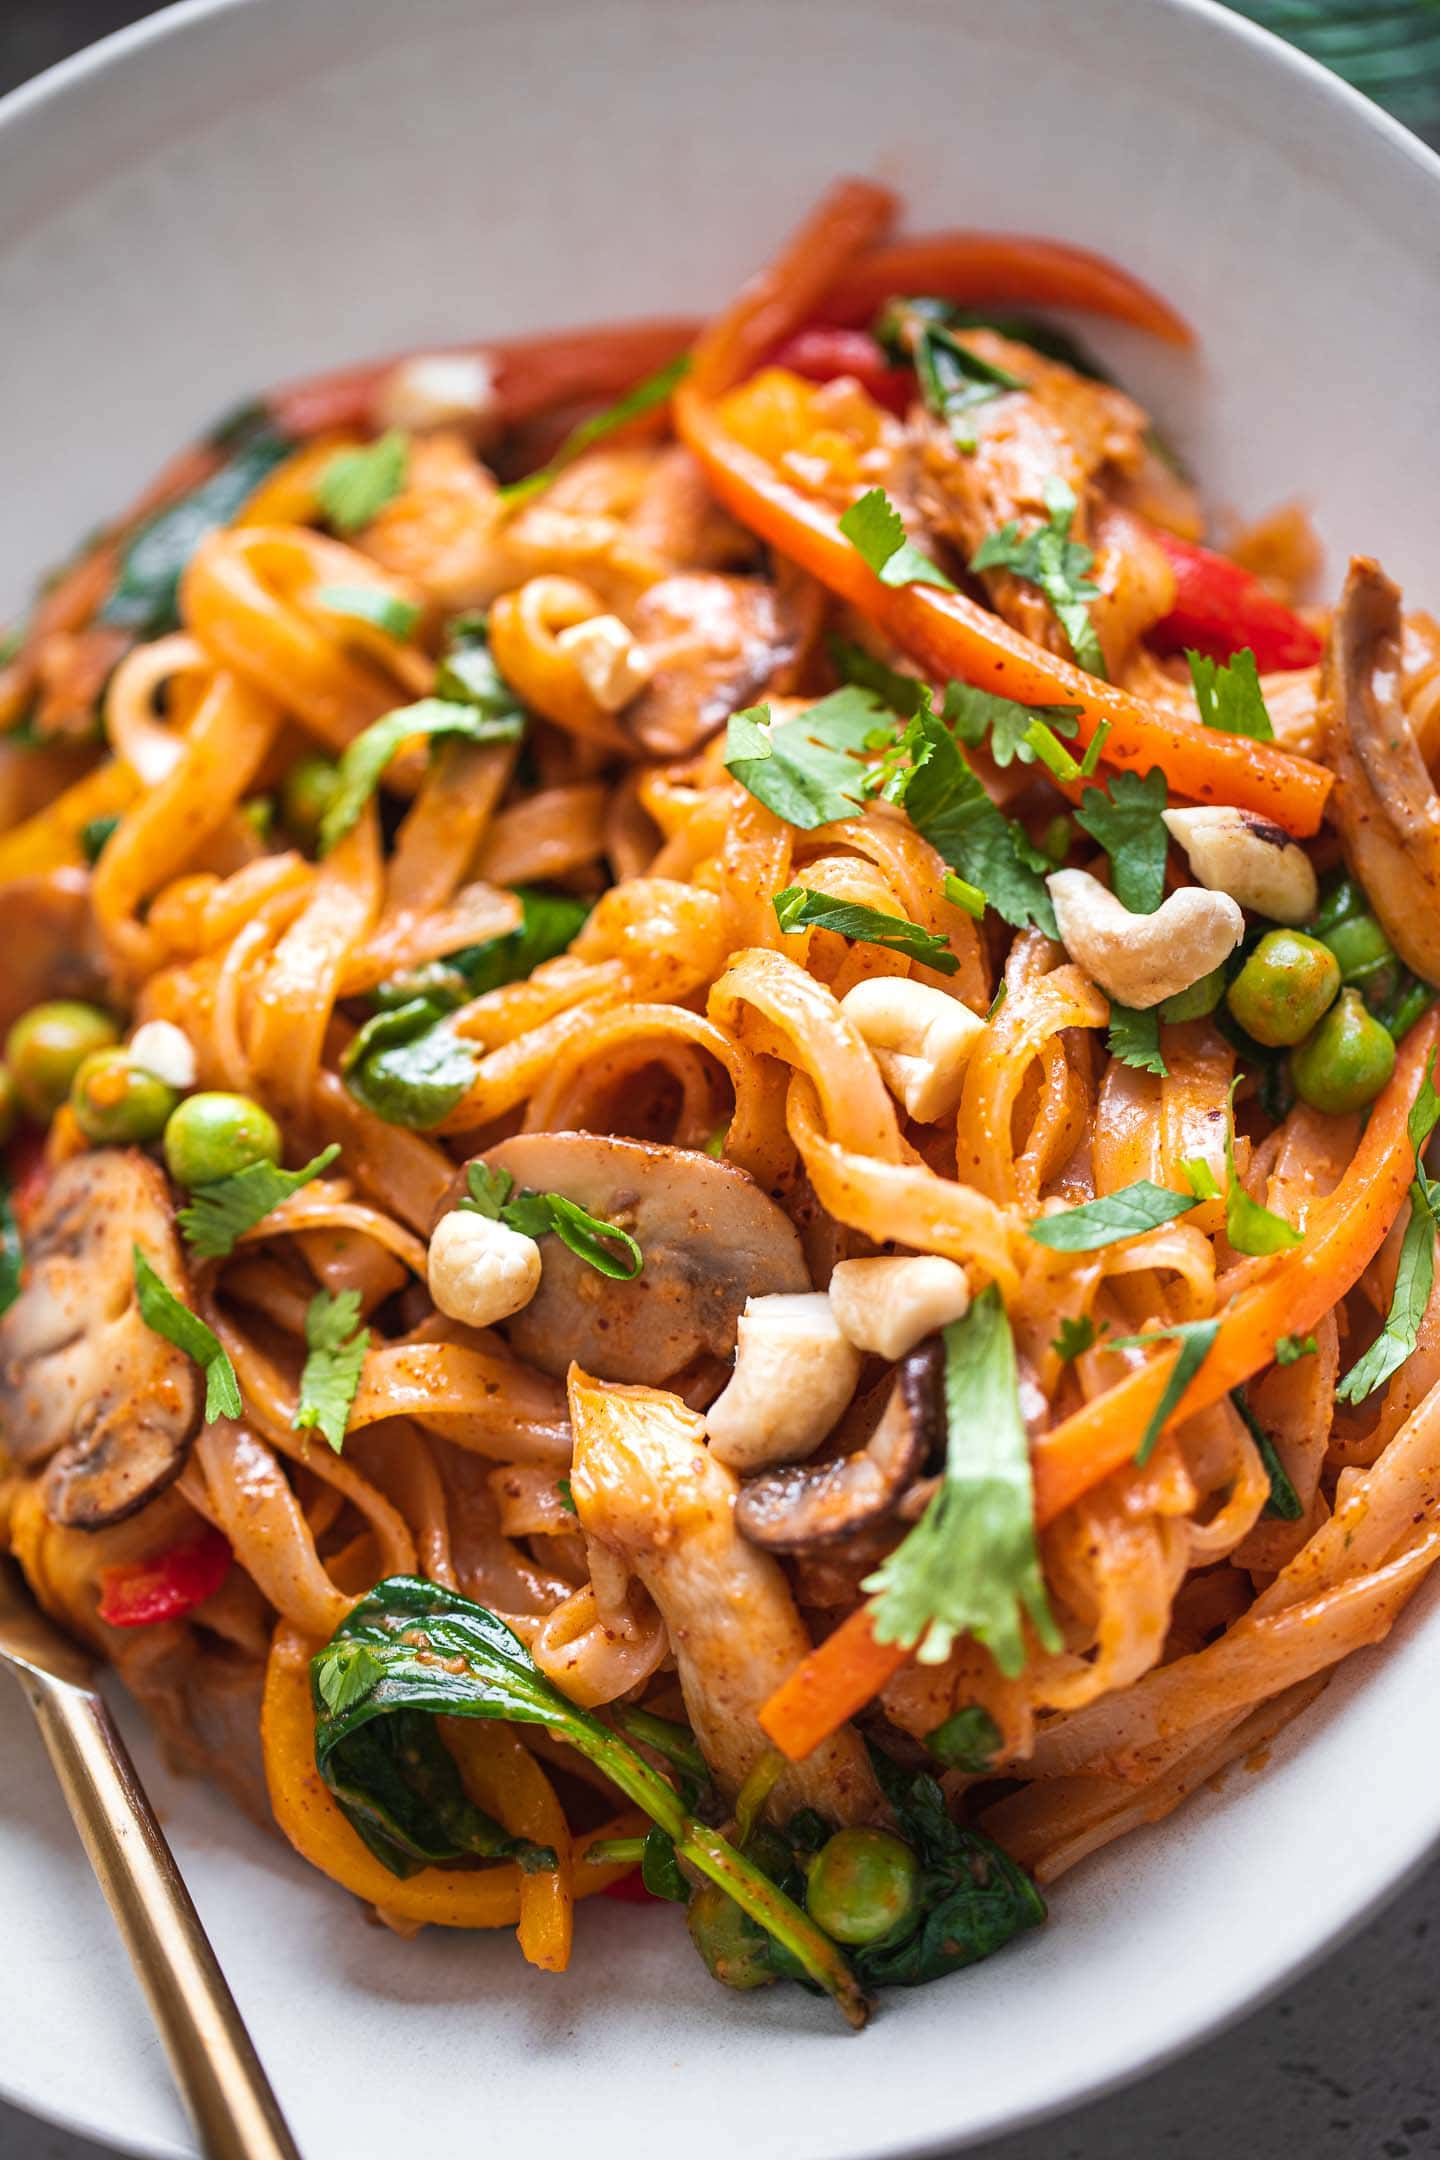 Closeup of stir-fried noodles with vegetables and coconut sauce